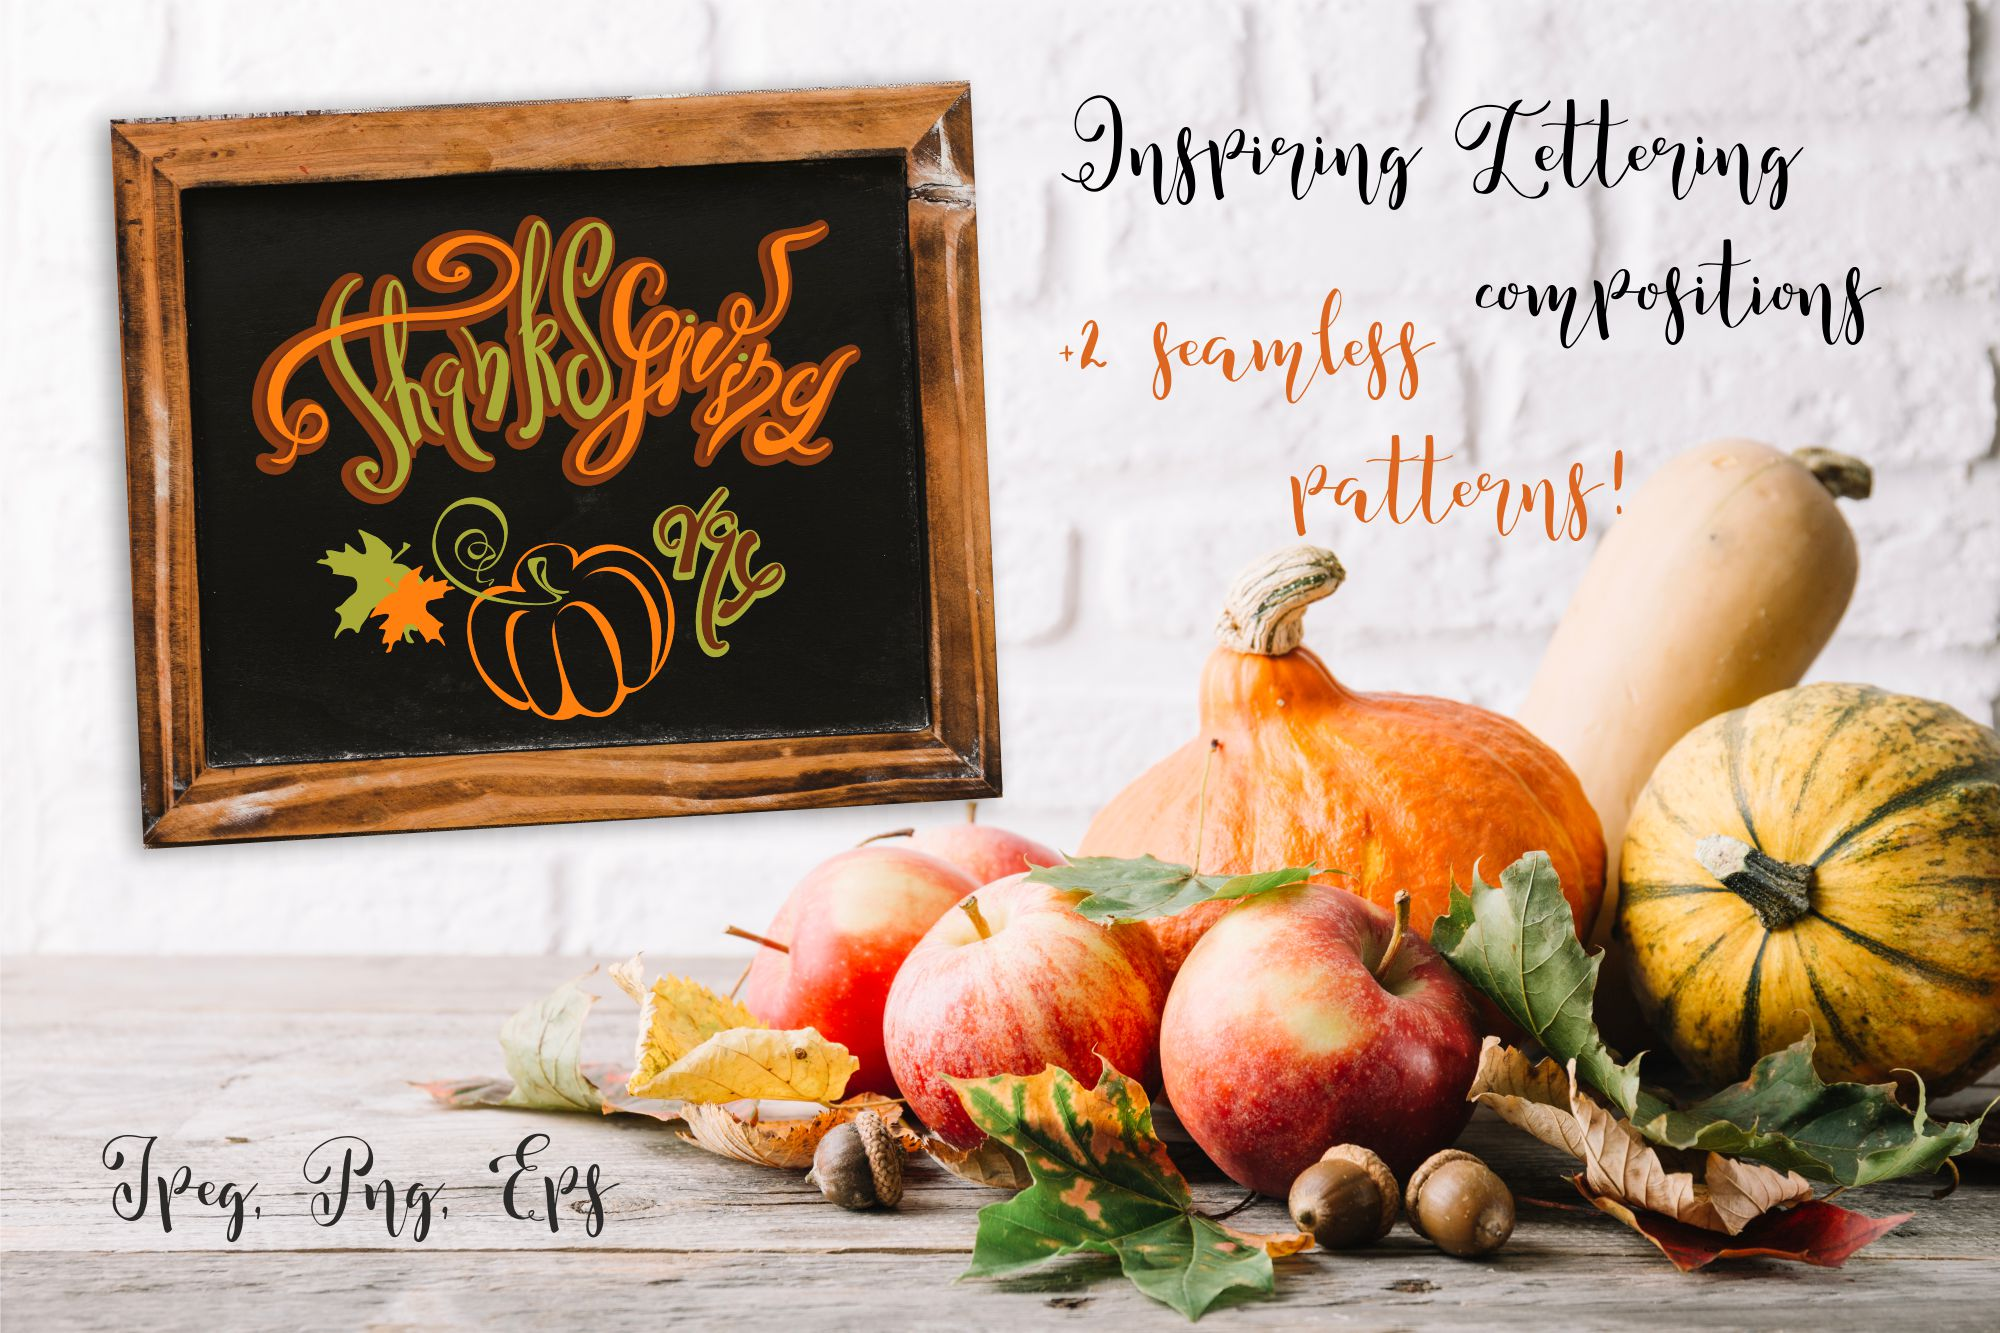 Thanksgiving day. Lettering compositions for holiday ...Thanksgiving